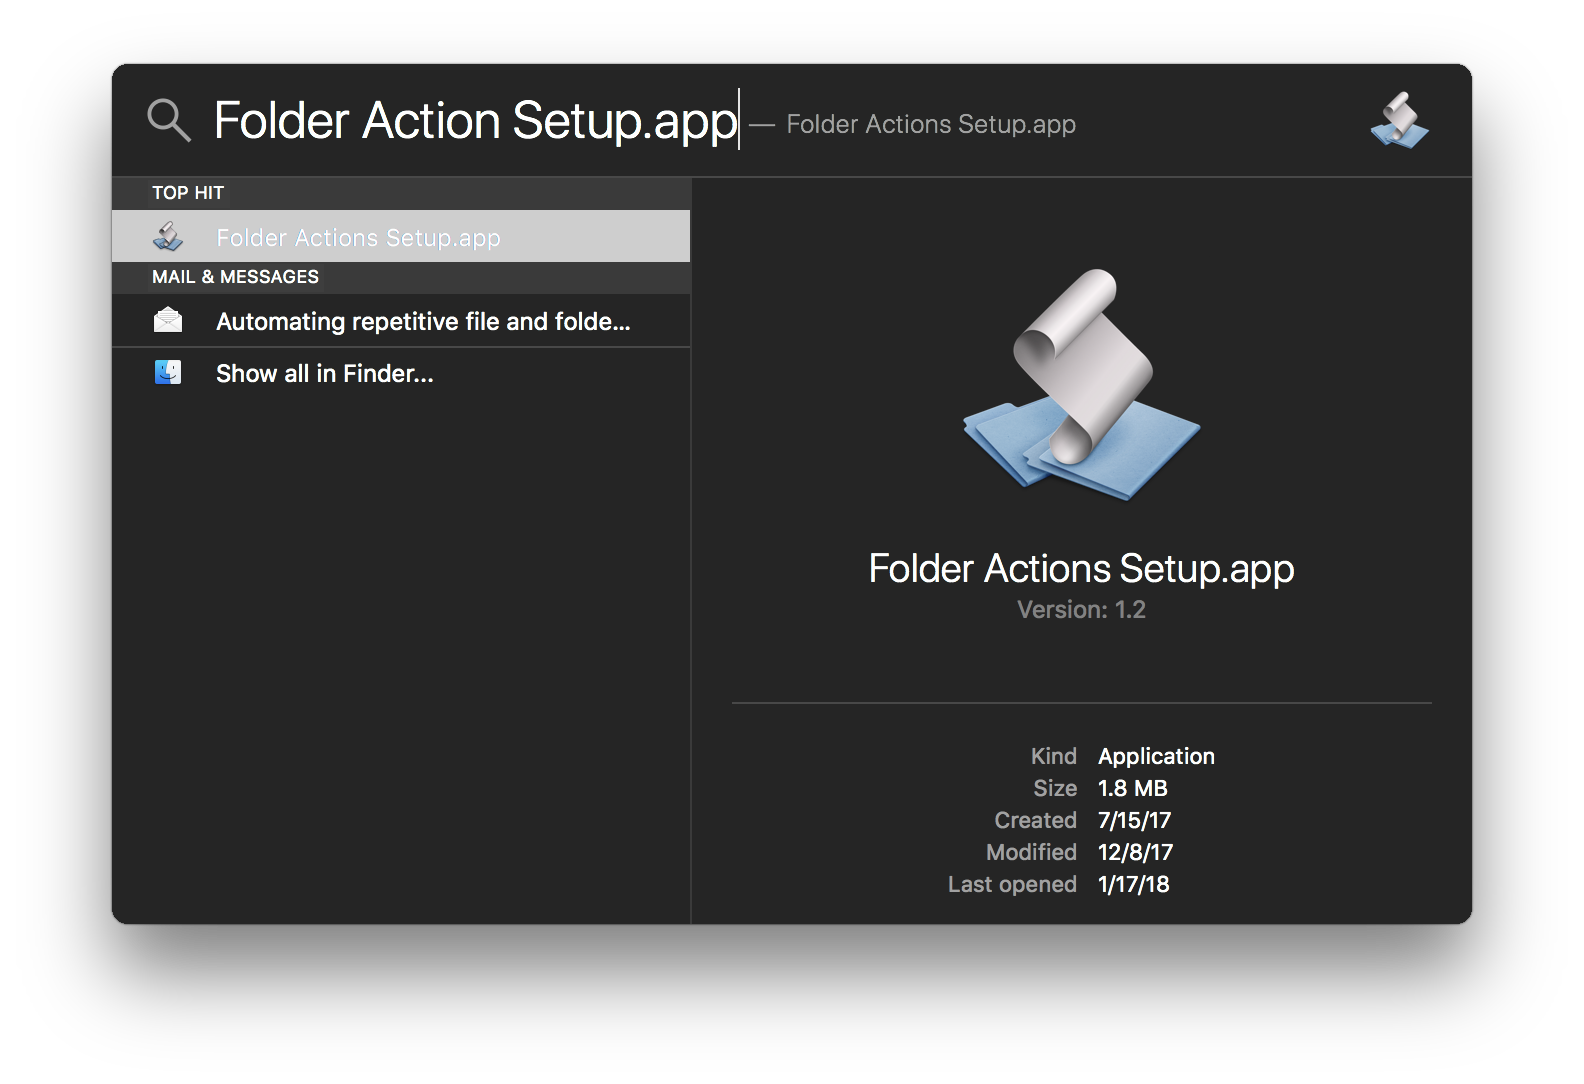 folder-actions-setup-search